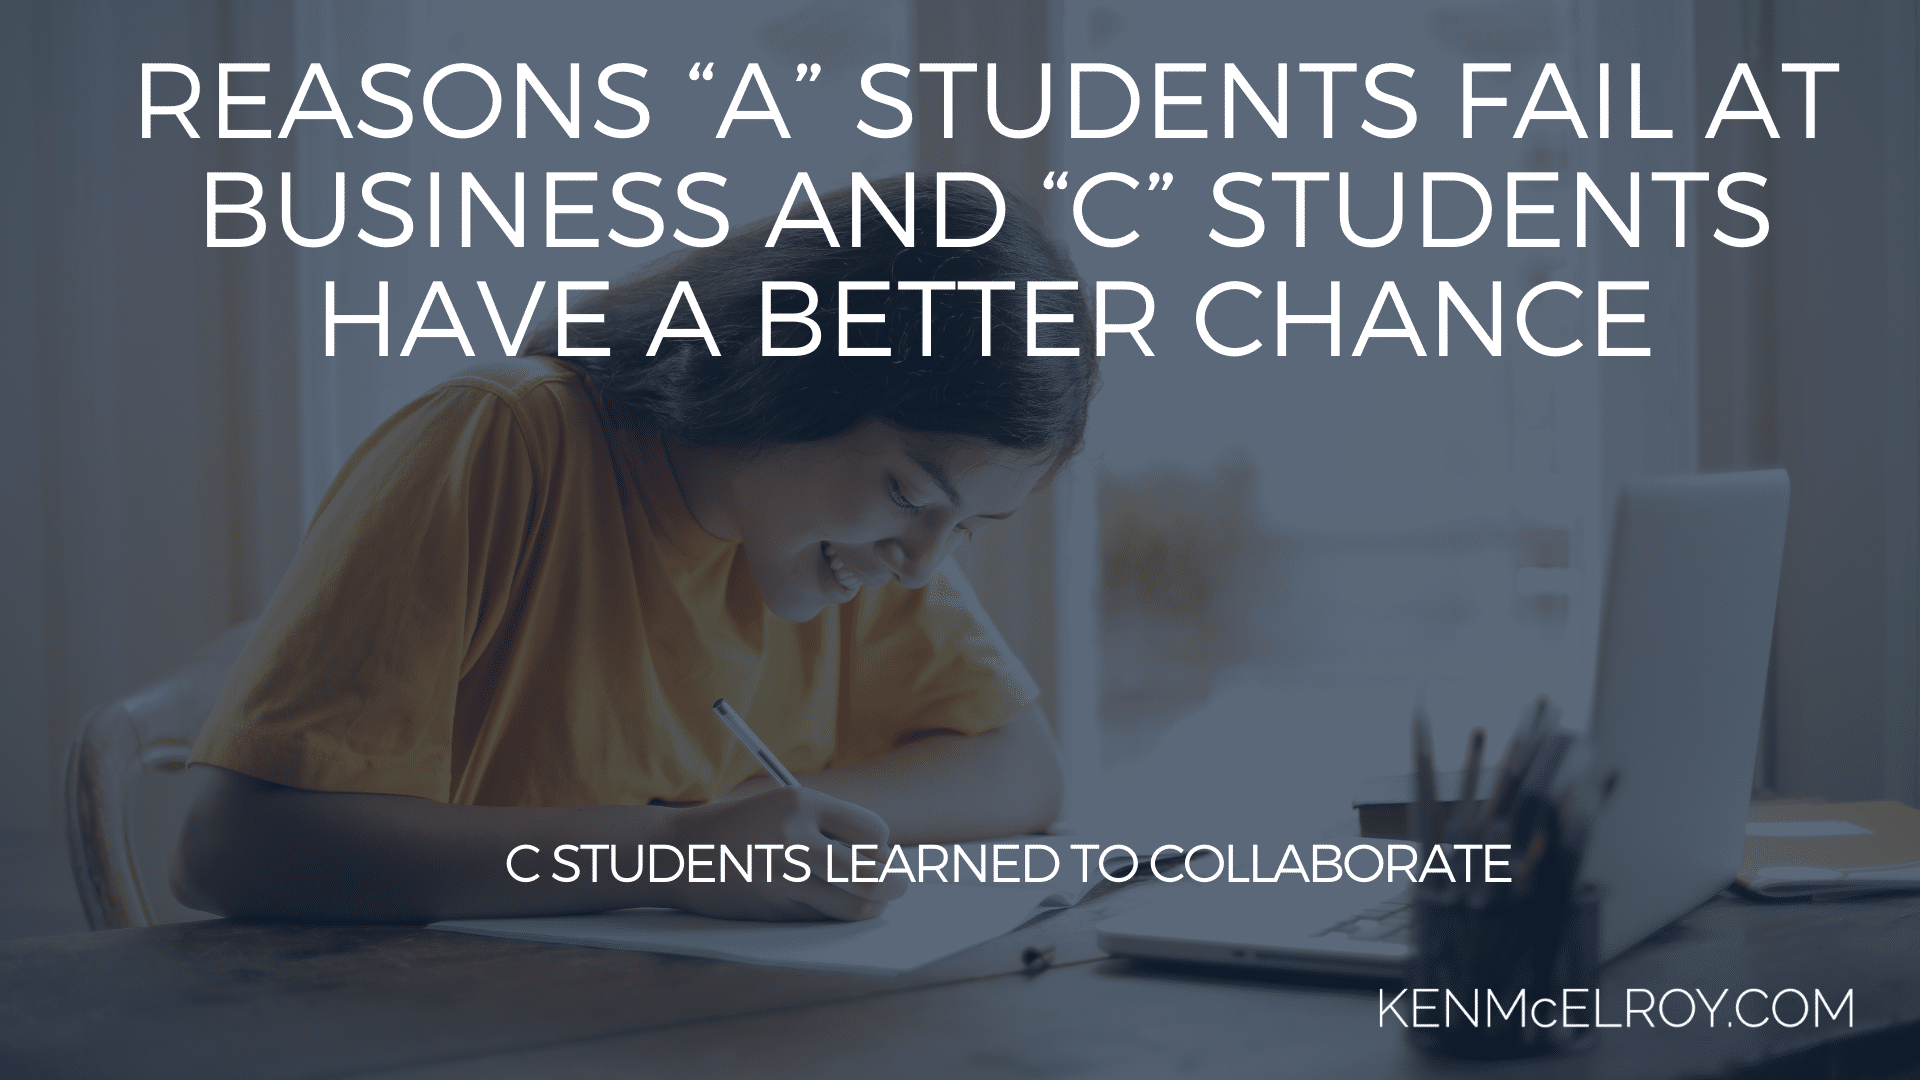 C students learned to collaborate | Ken McElroy Image